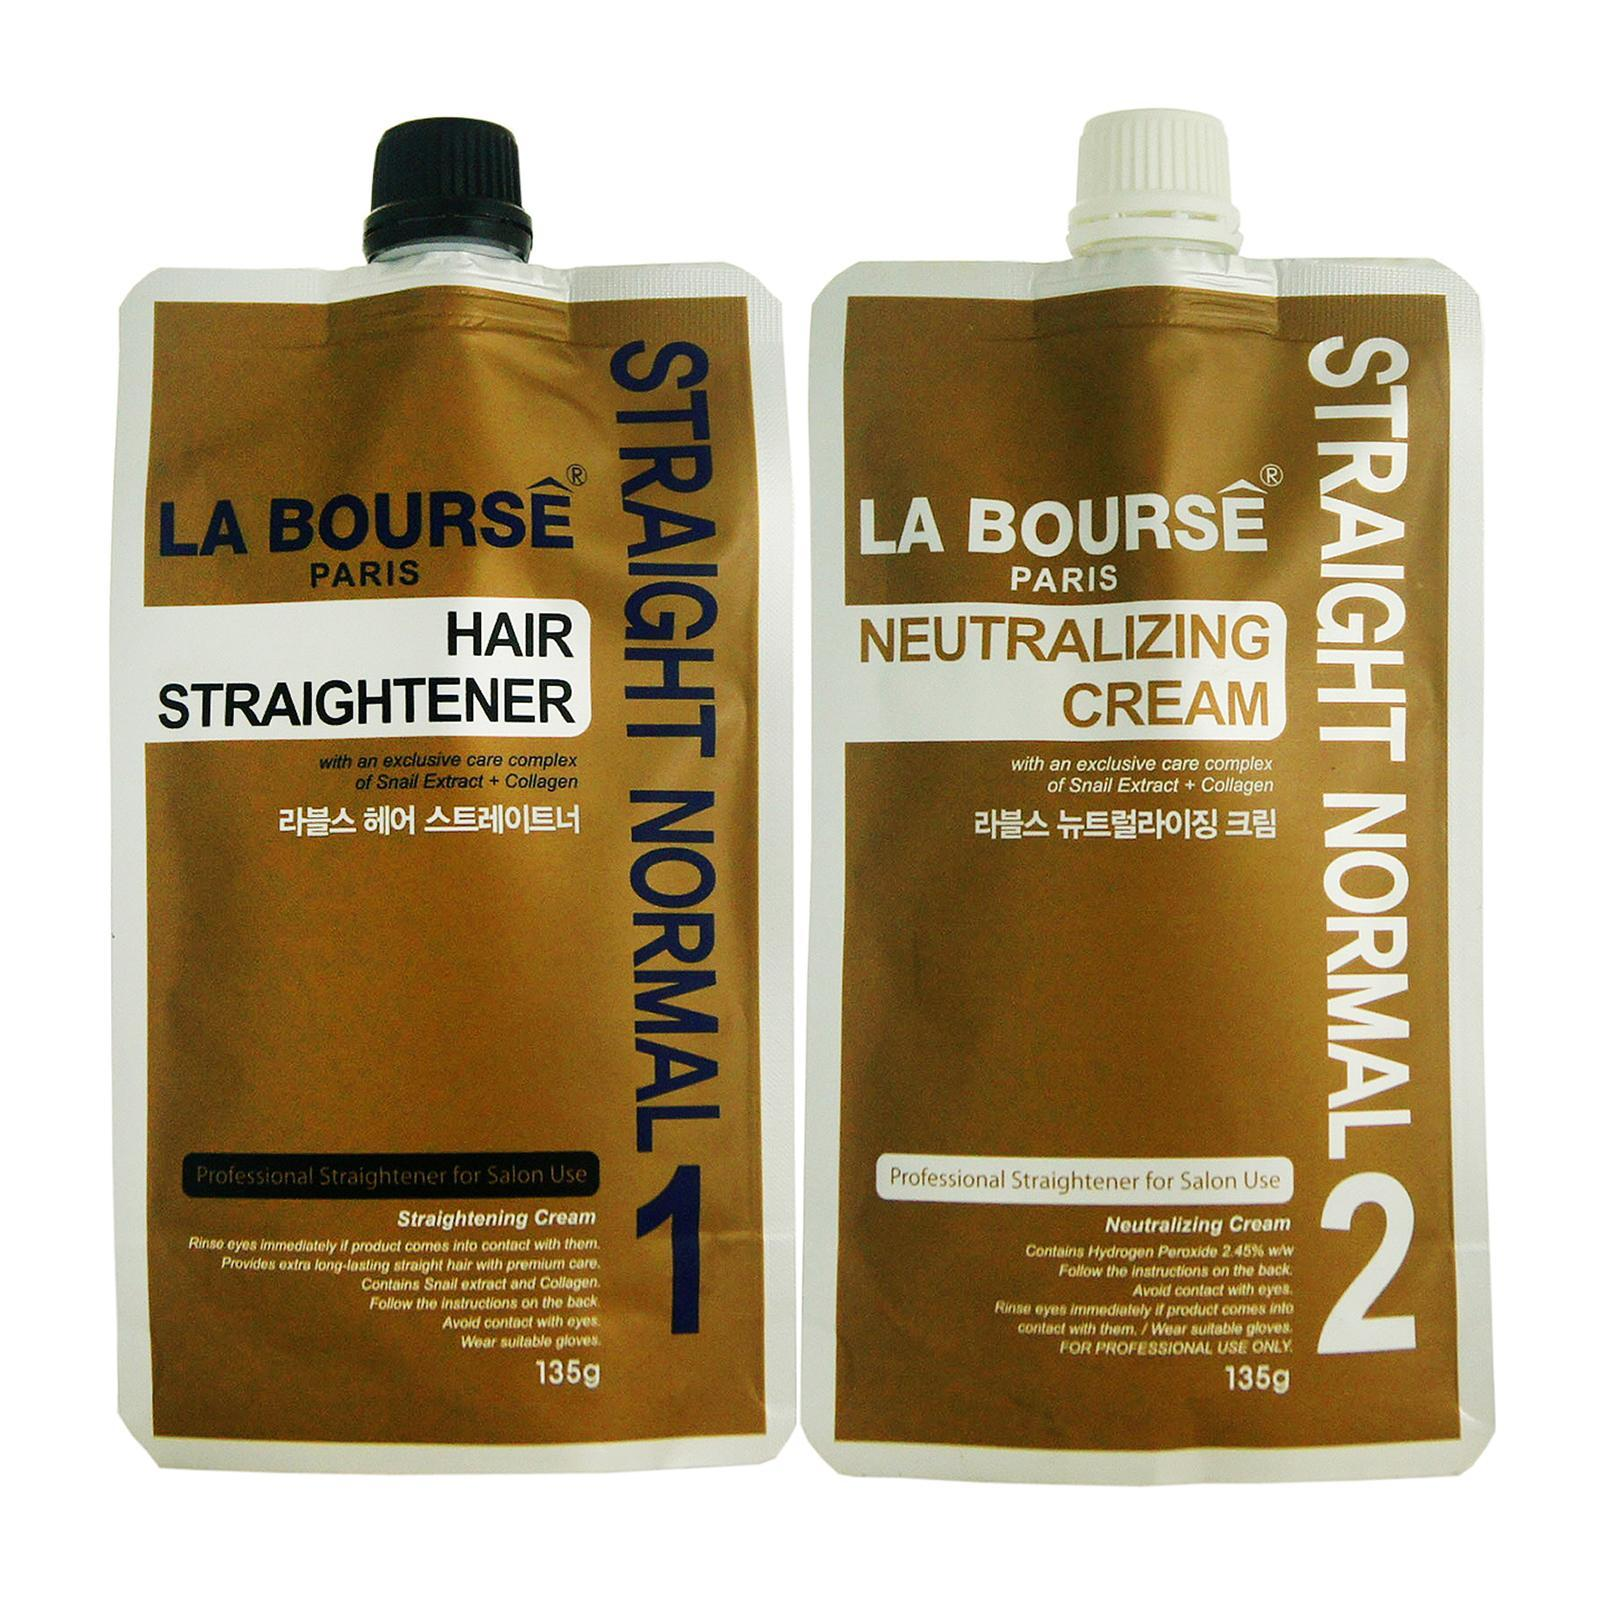 La Bourse 109 Hair Straightener Normal